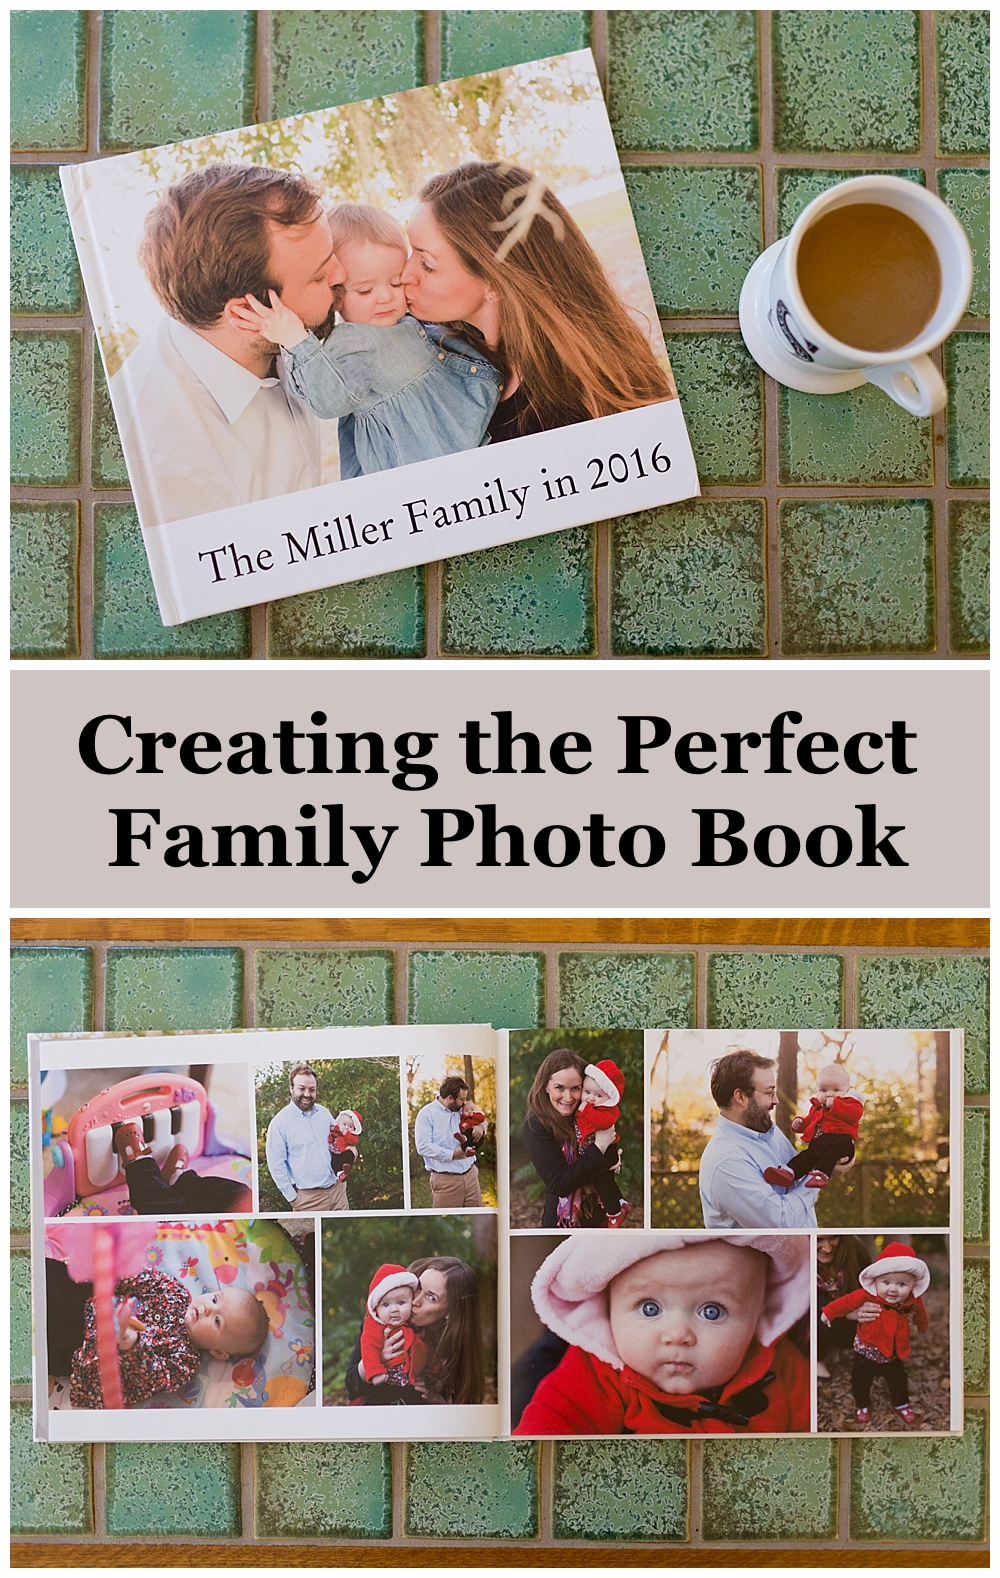 How to Make a Family Photo Book - Best Family Photo Books